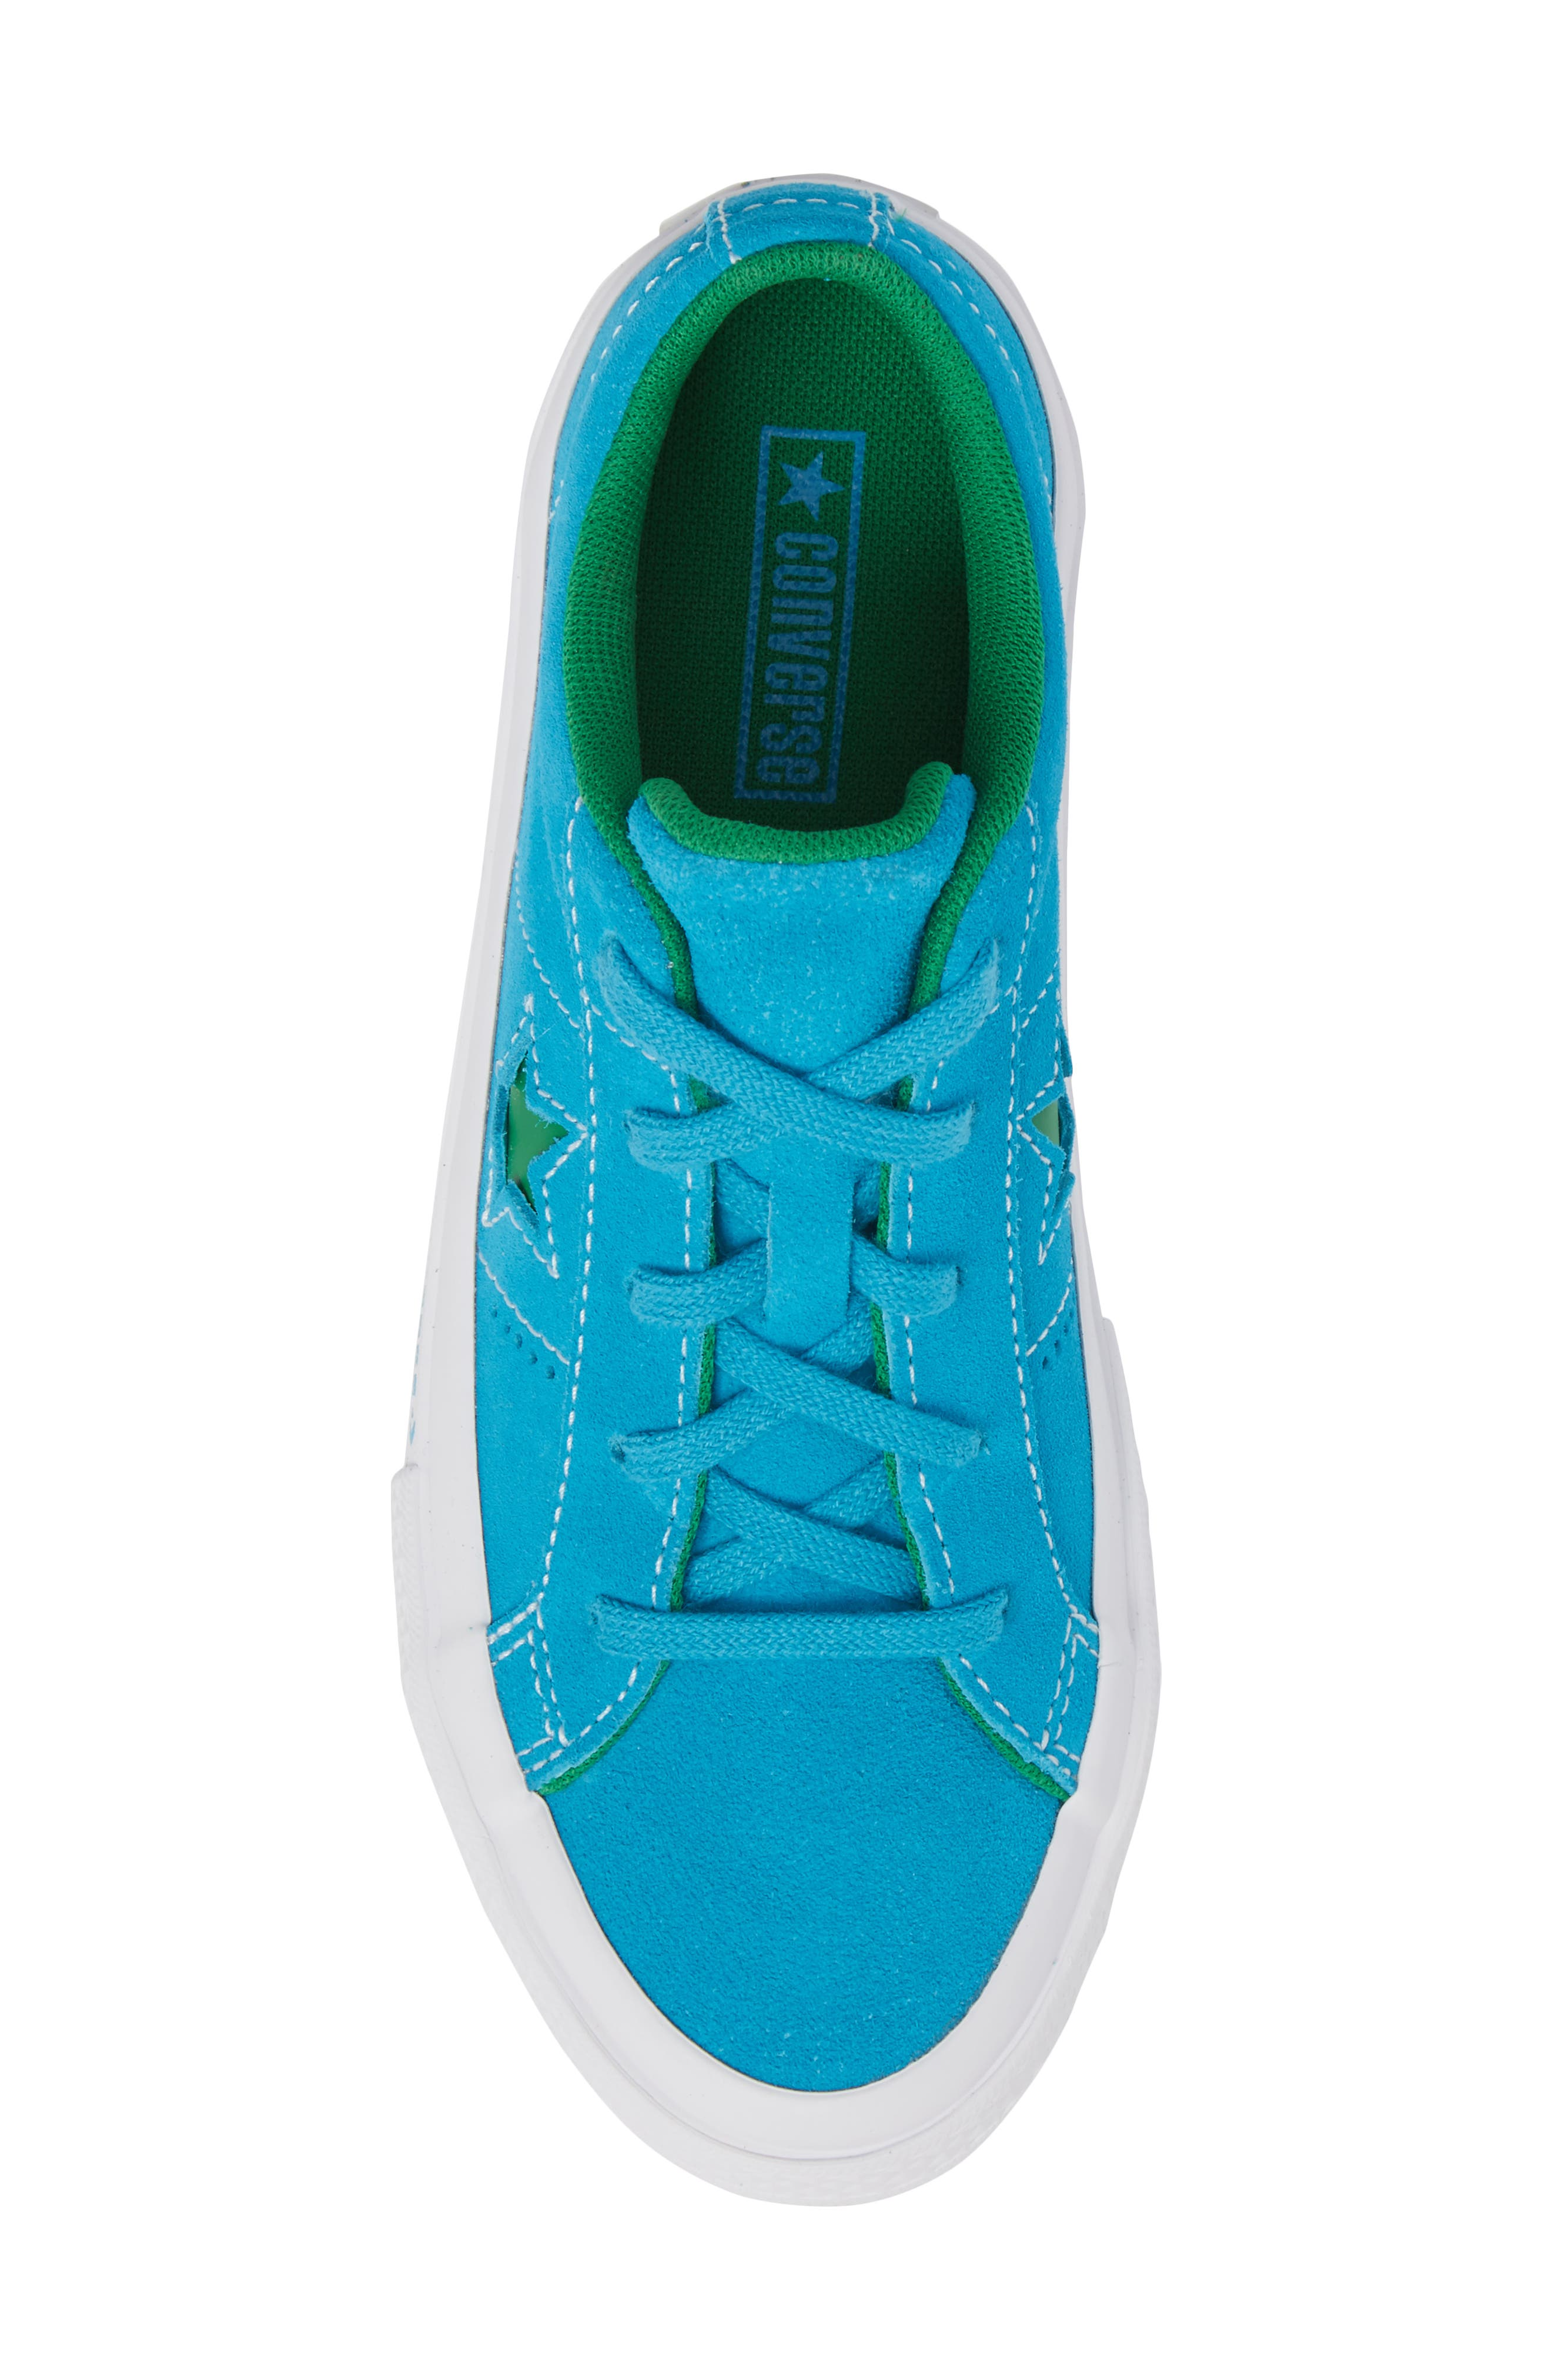 Chuck Taylor<sup>®</sup> All Star<sup>®</sup> One Star Leather Platform Sneaker,                             Alternate thumbnail 5, color,                             Hawaiian Ocean